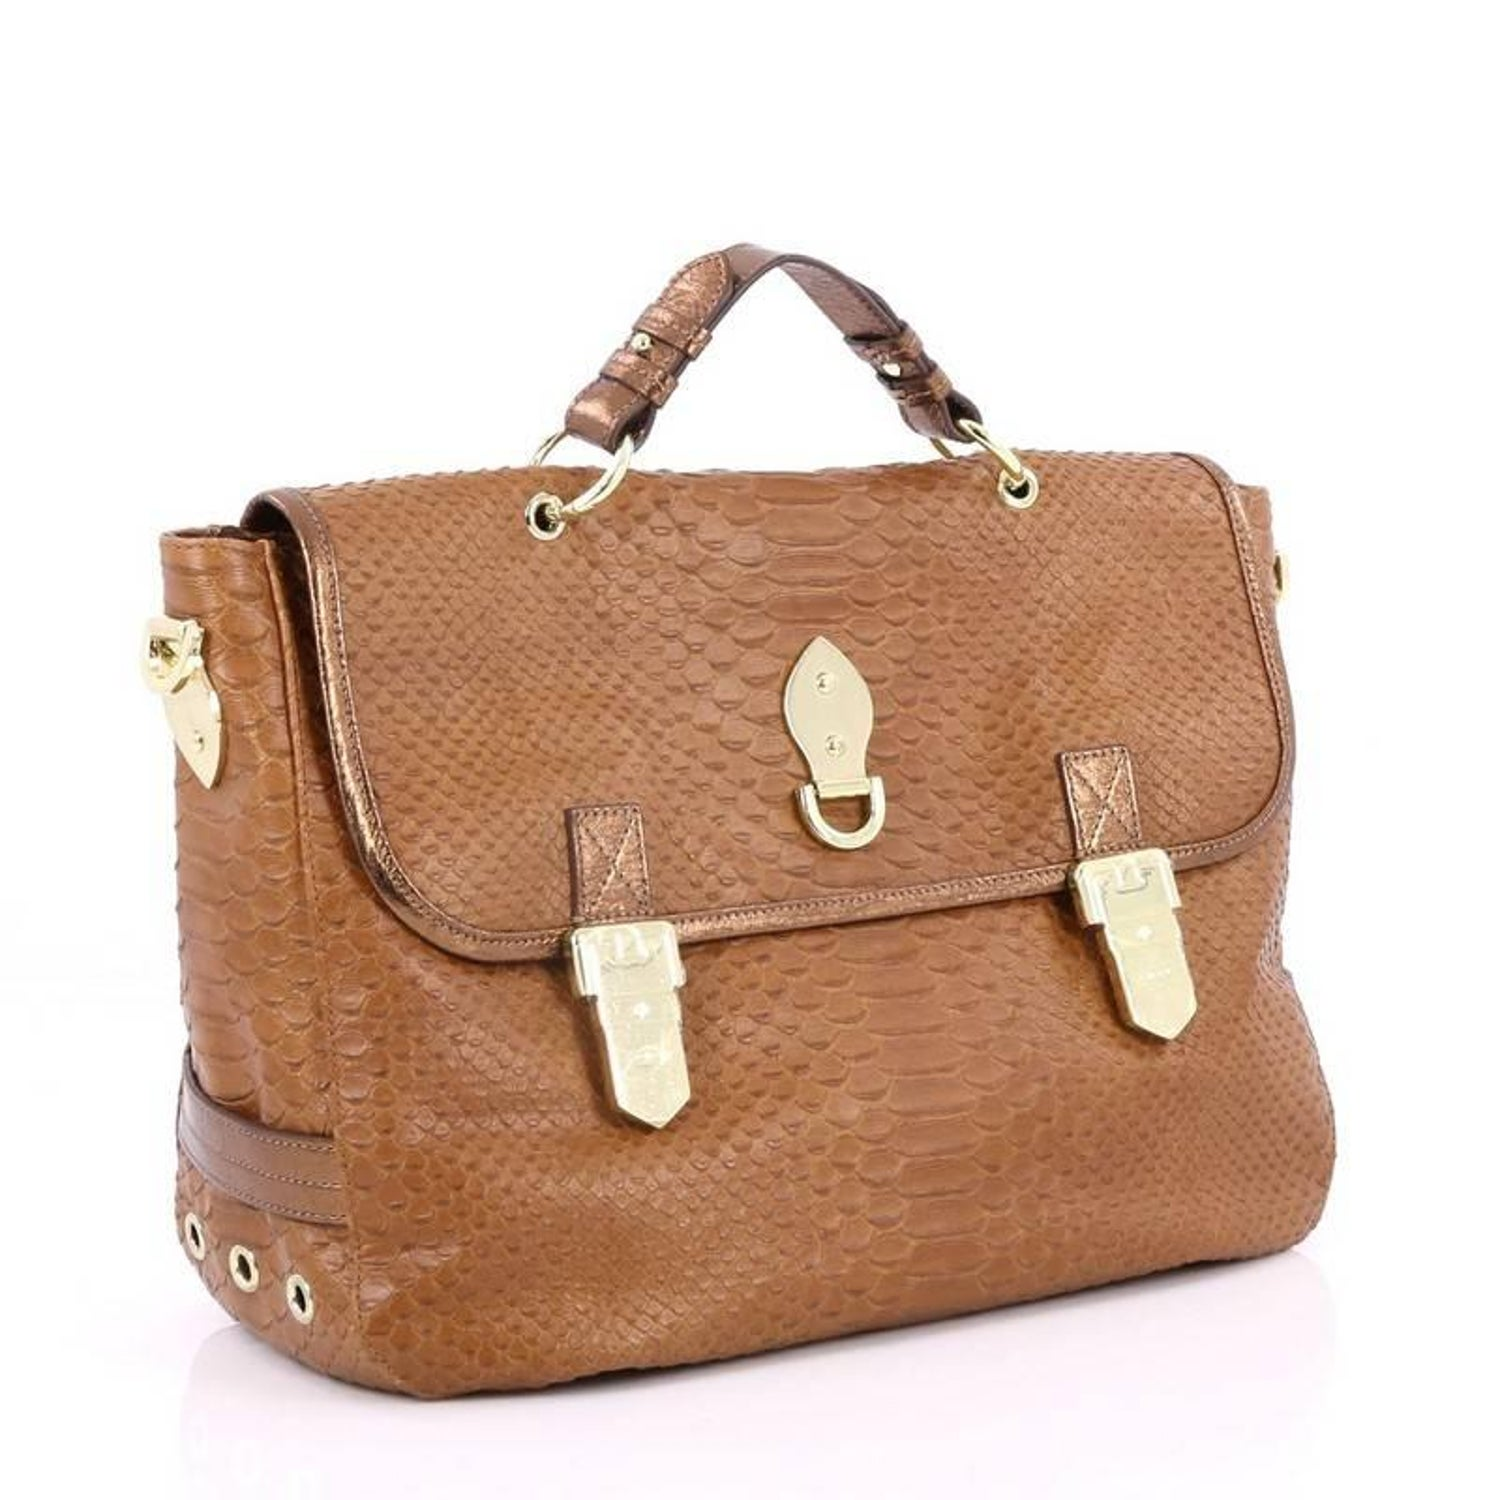 Mulberry Tillie Satchel Python Embossed Leather Medium at 1stdibs 72ef410dcb0cb